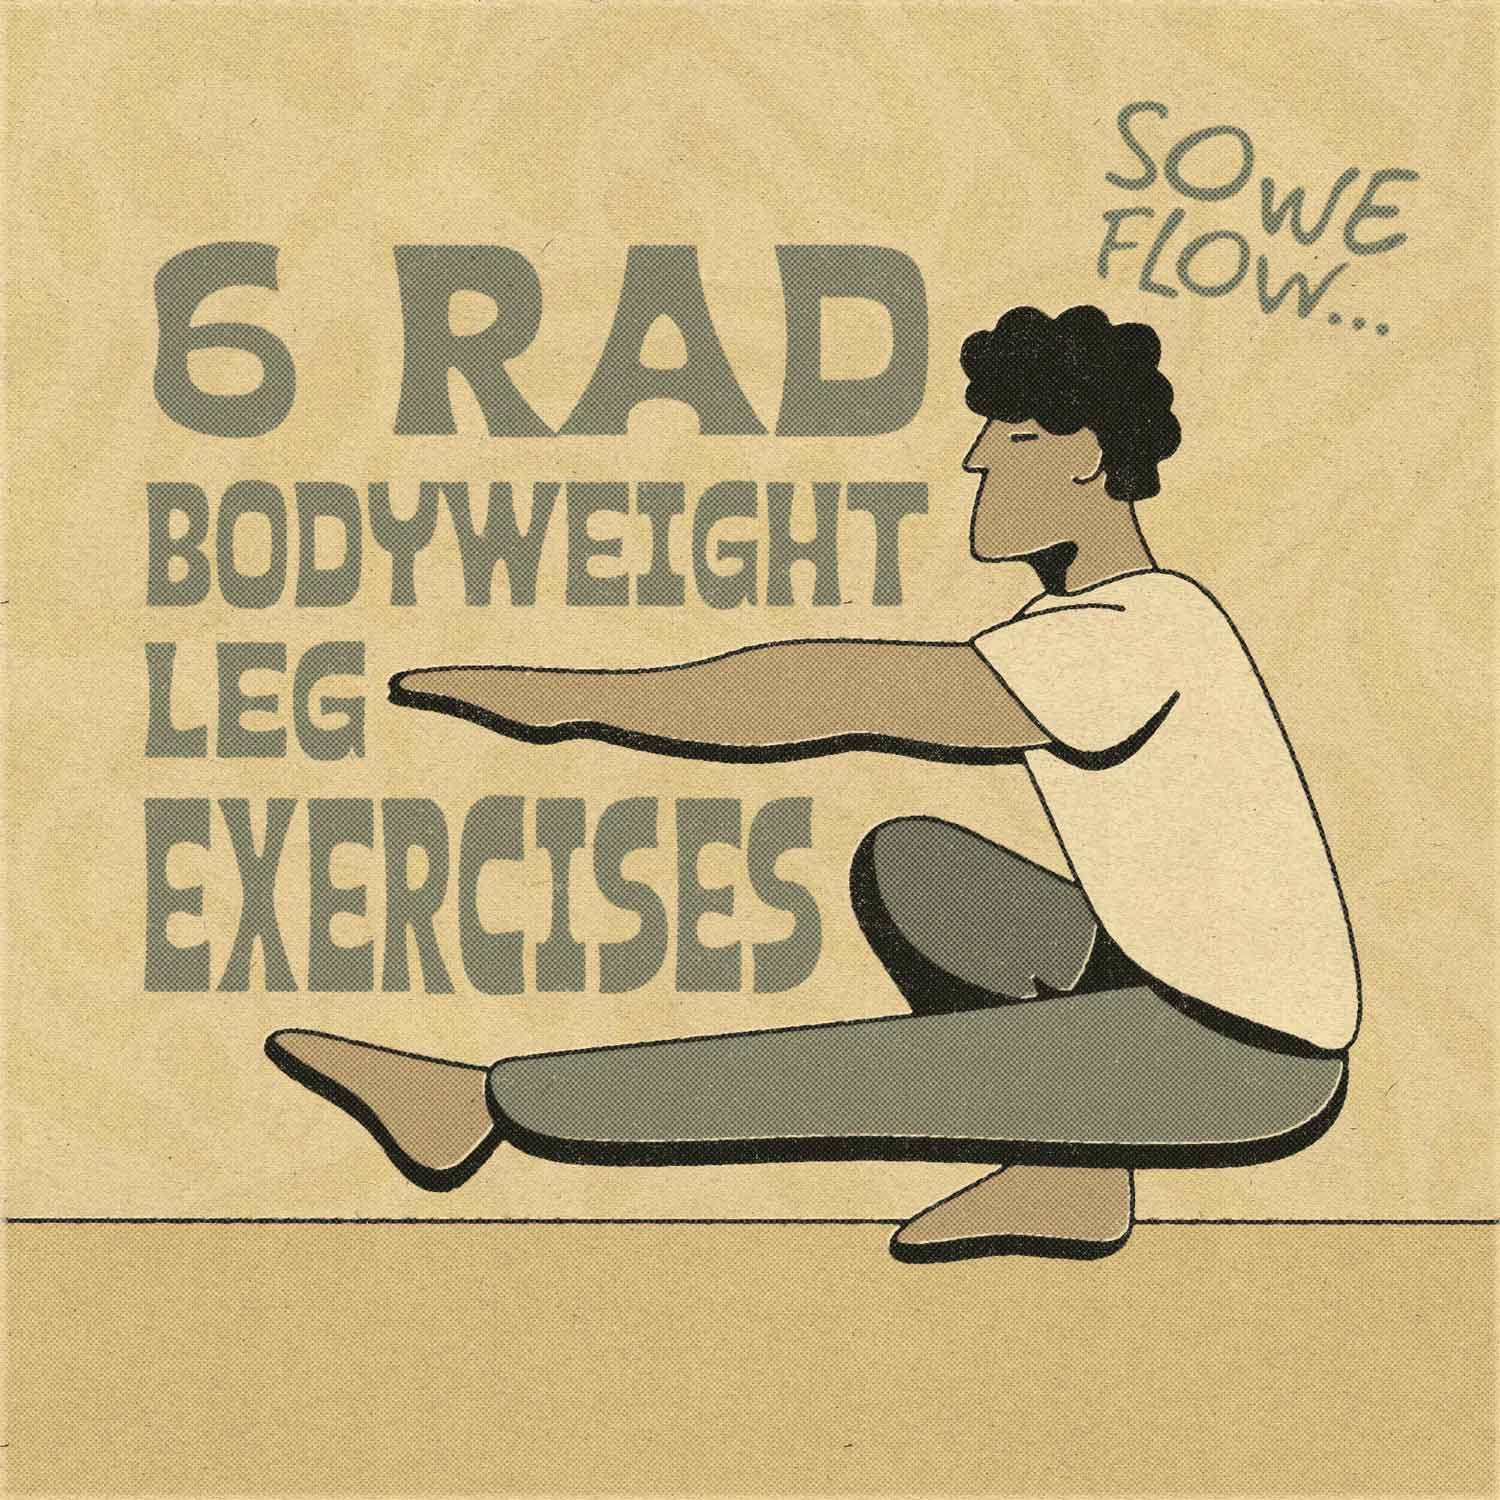 Working Out Legs At Home: 6 Rad Bodyweight Leg Exercises - So We Flow...